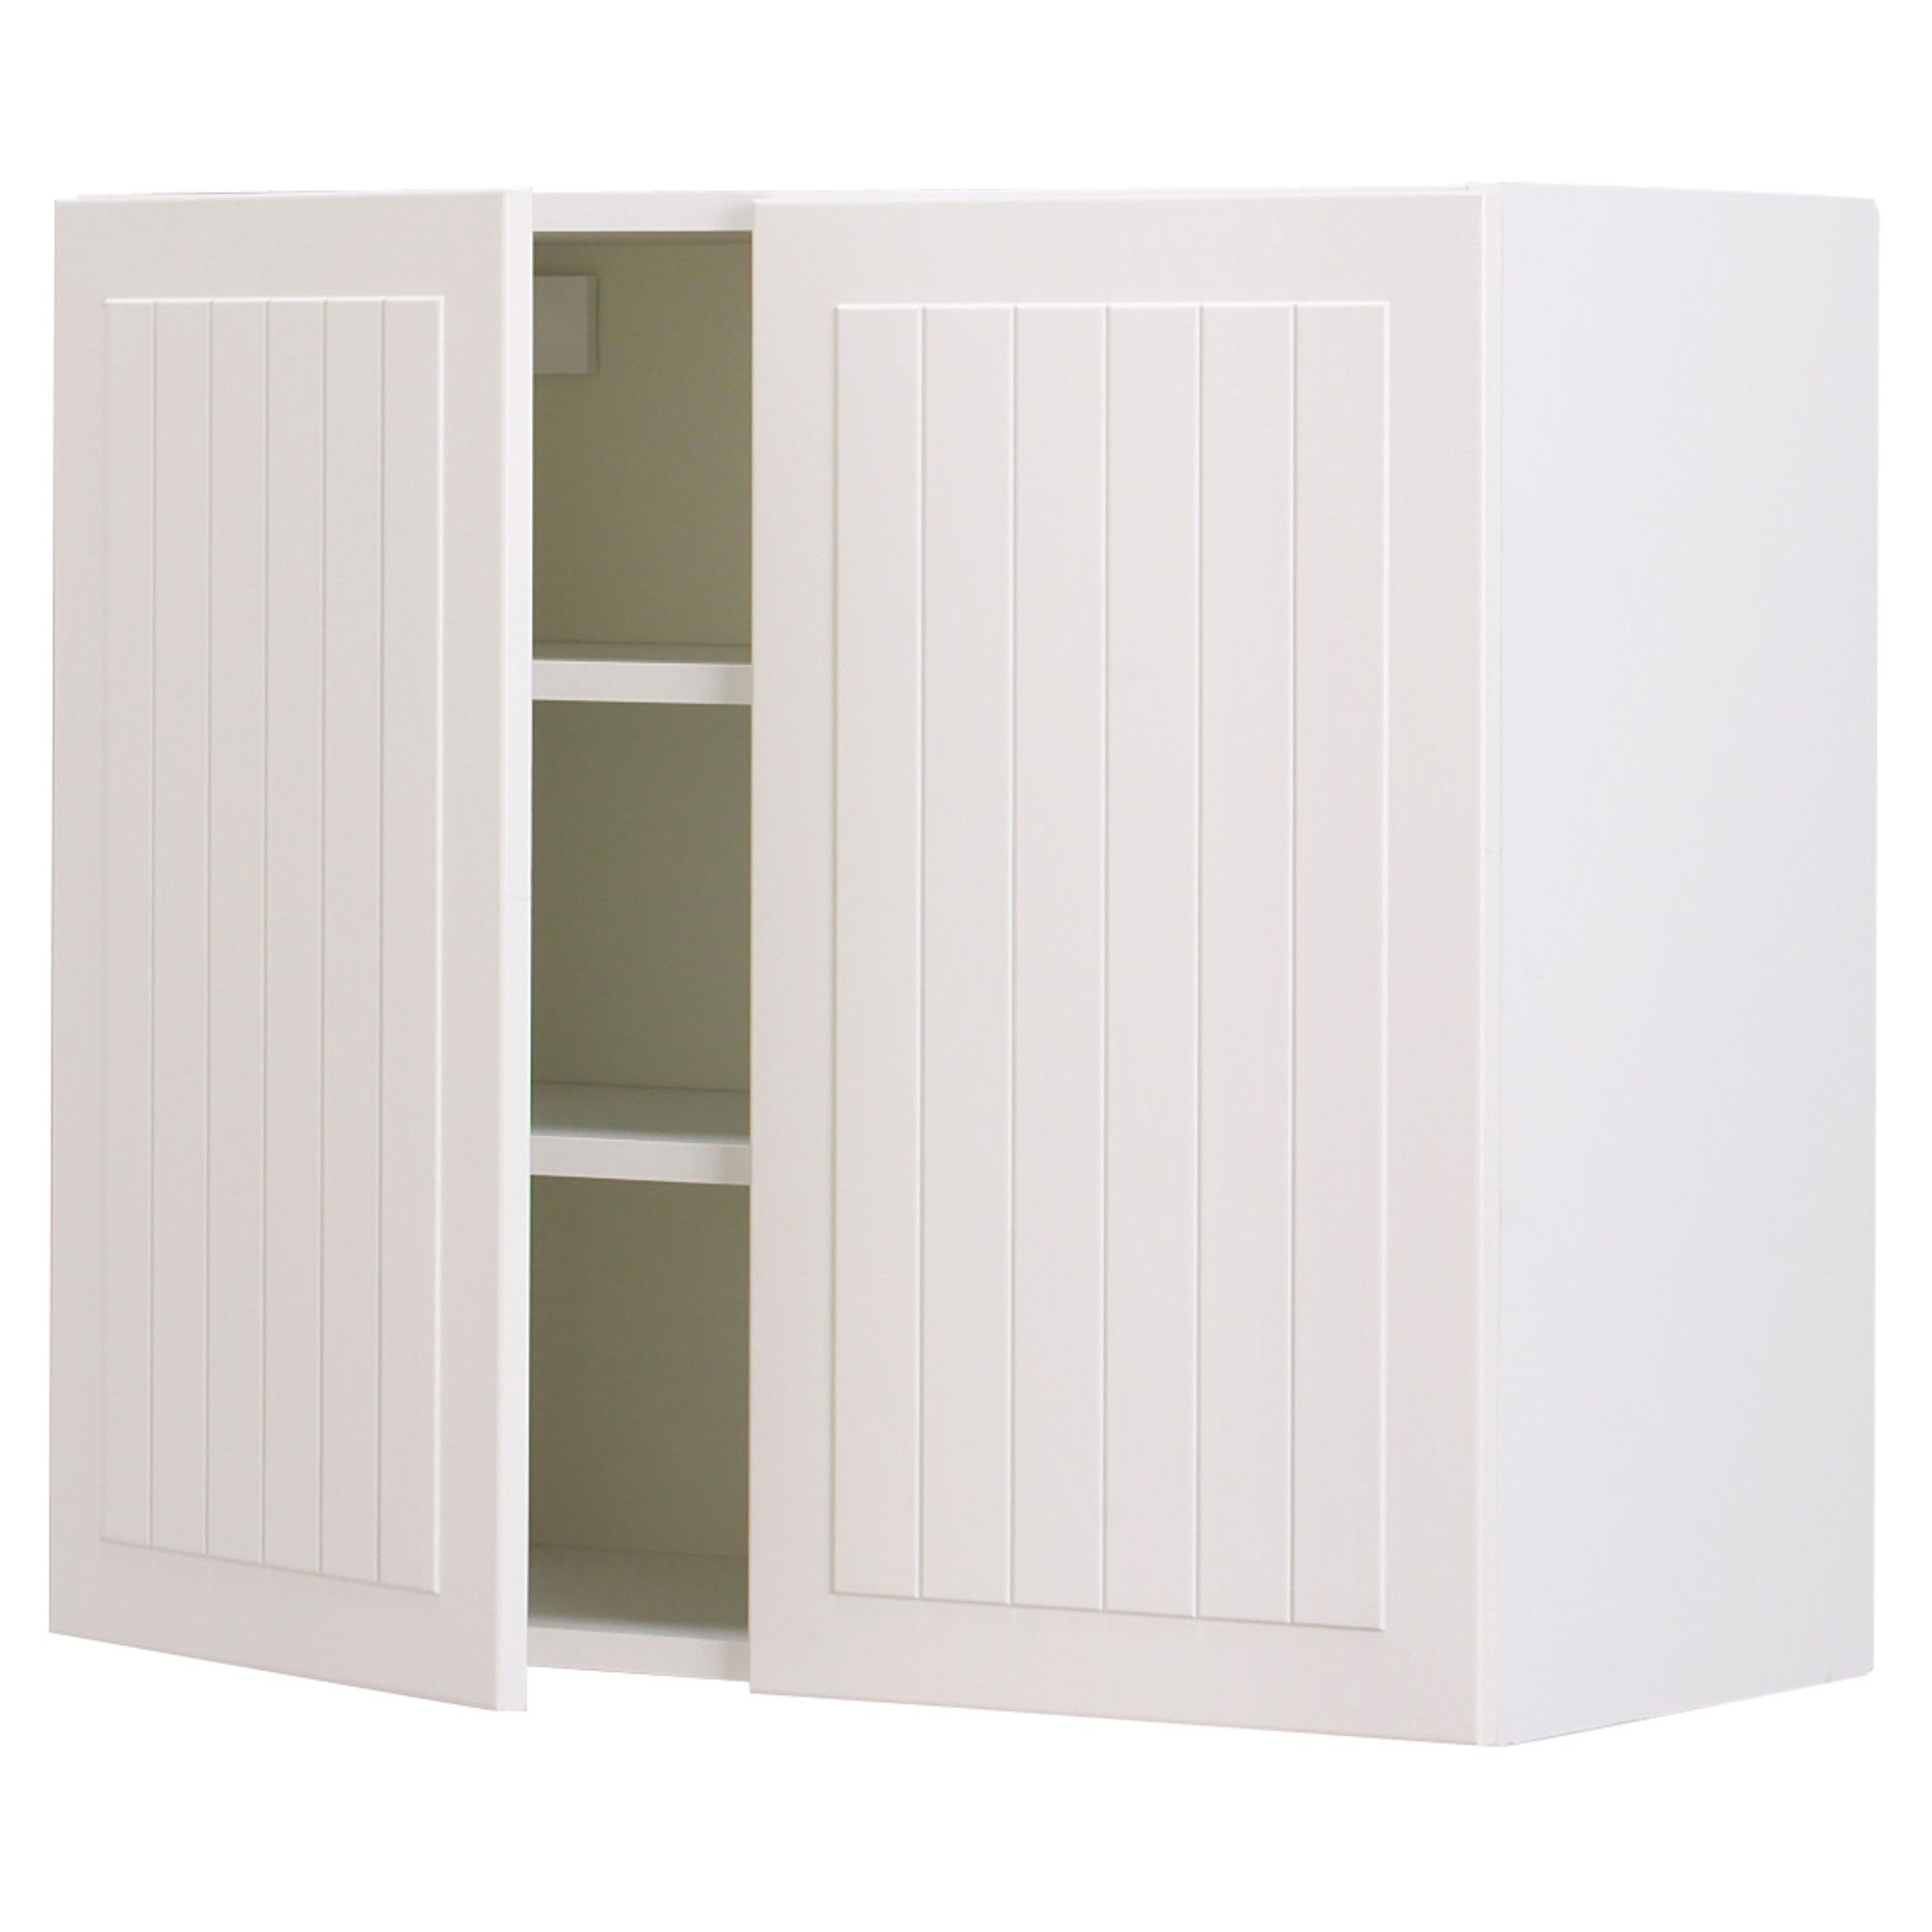 Akurum Wall Cabinet With 2 Doors White St T White 24×30  # Grevback Ikea Banc Tv Dimensions